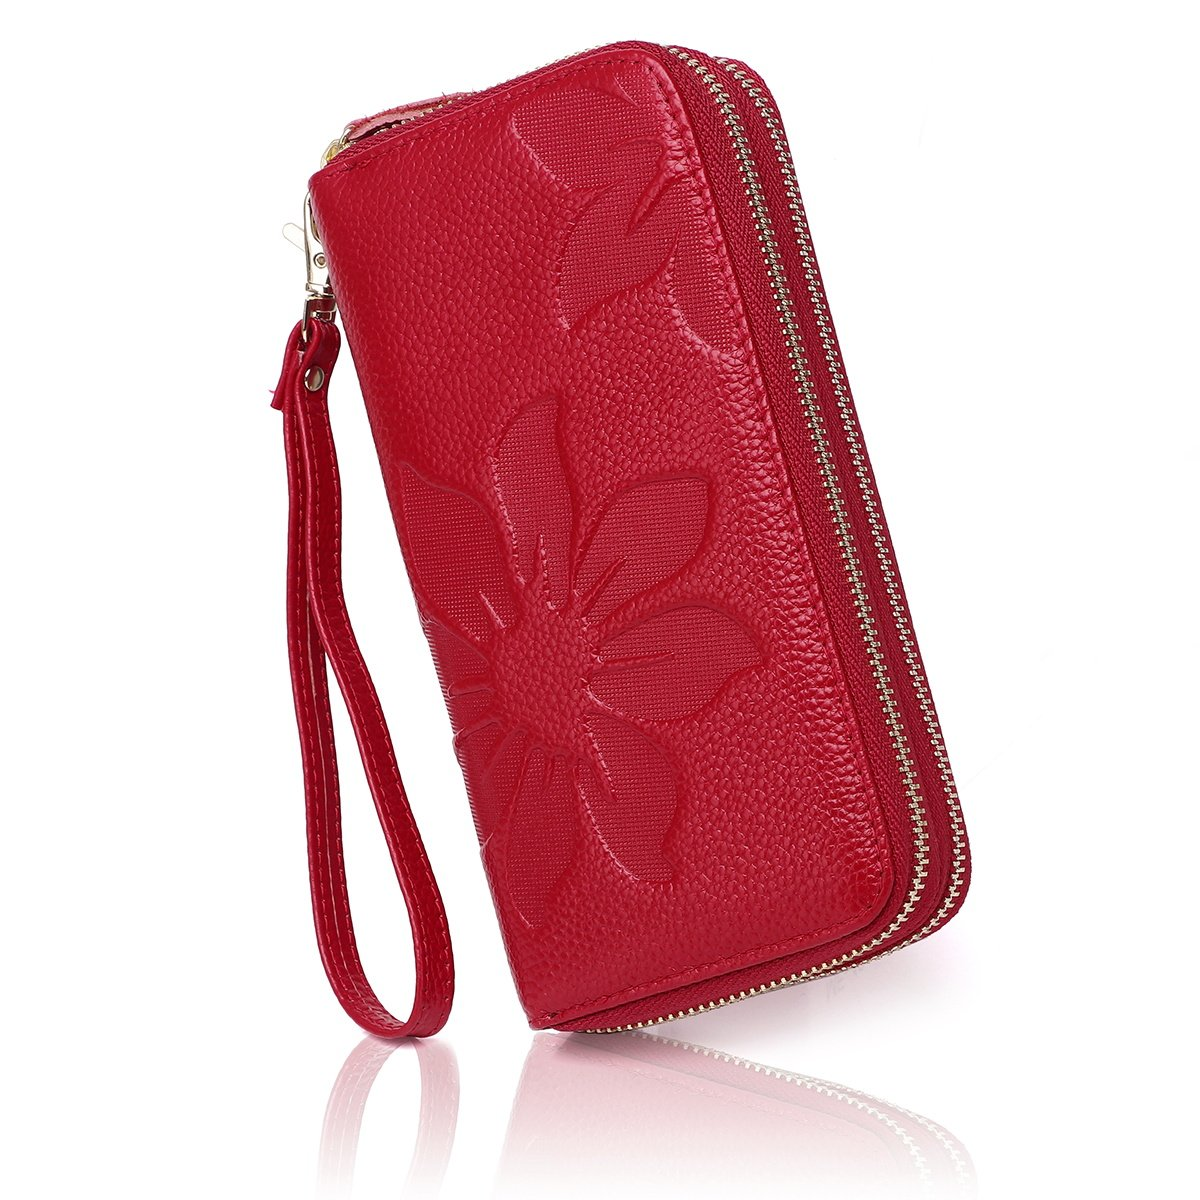 APHISON Women RFID Blocking Purse Zipper Leather Wallet Card Holder/Gift Box 8348 (RED) 333RPL8348RED